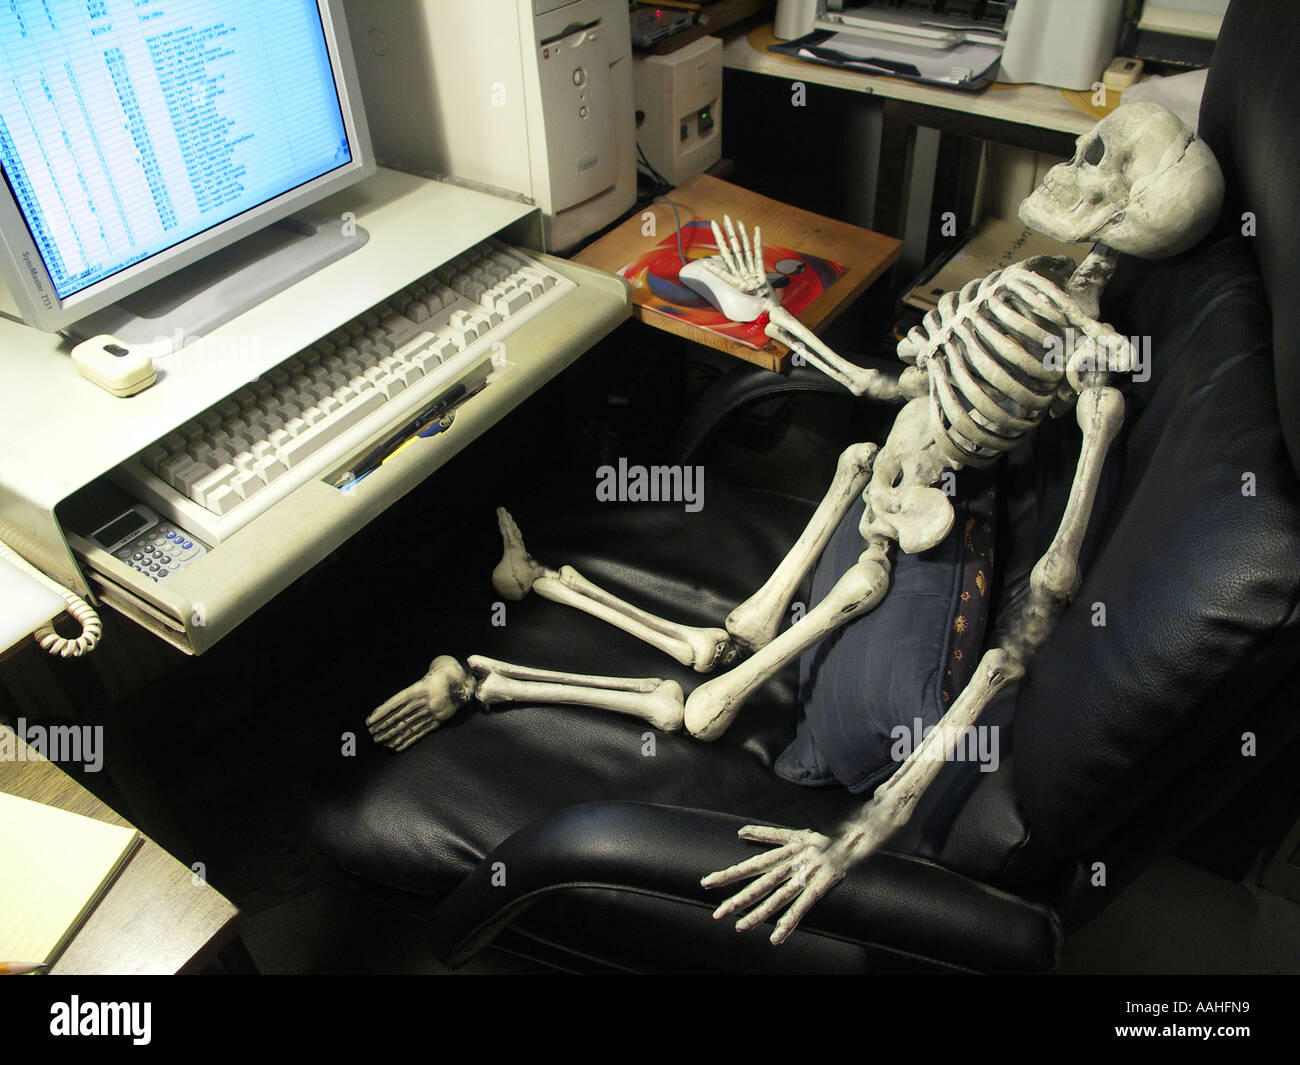 Skeleton Using a Computer Stock Photo - Alamy